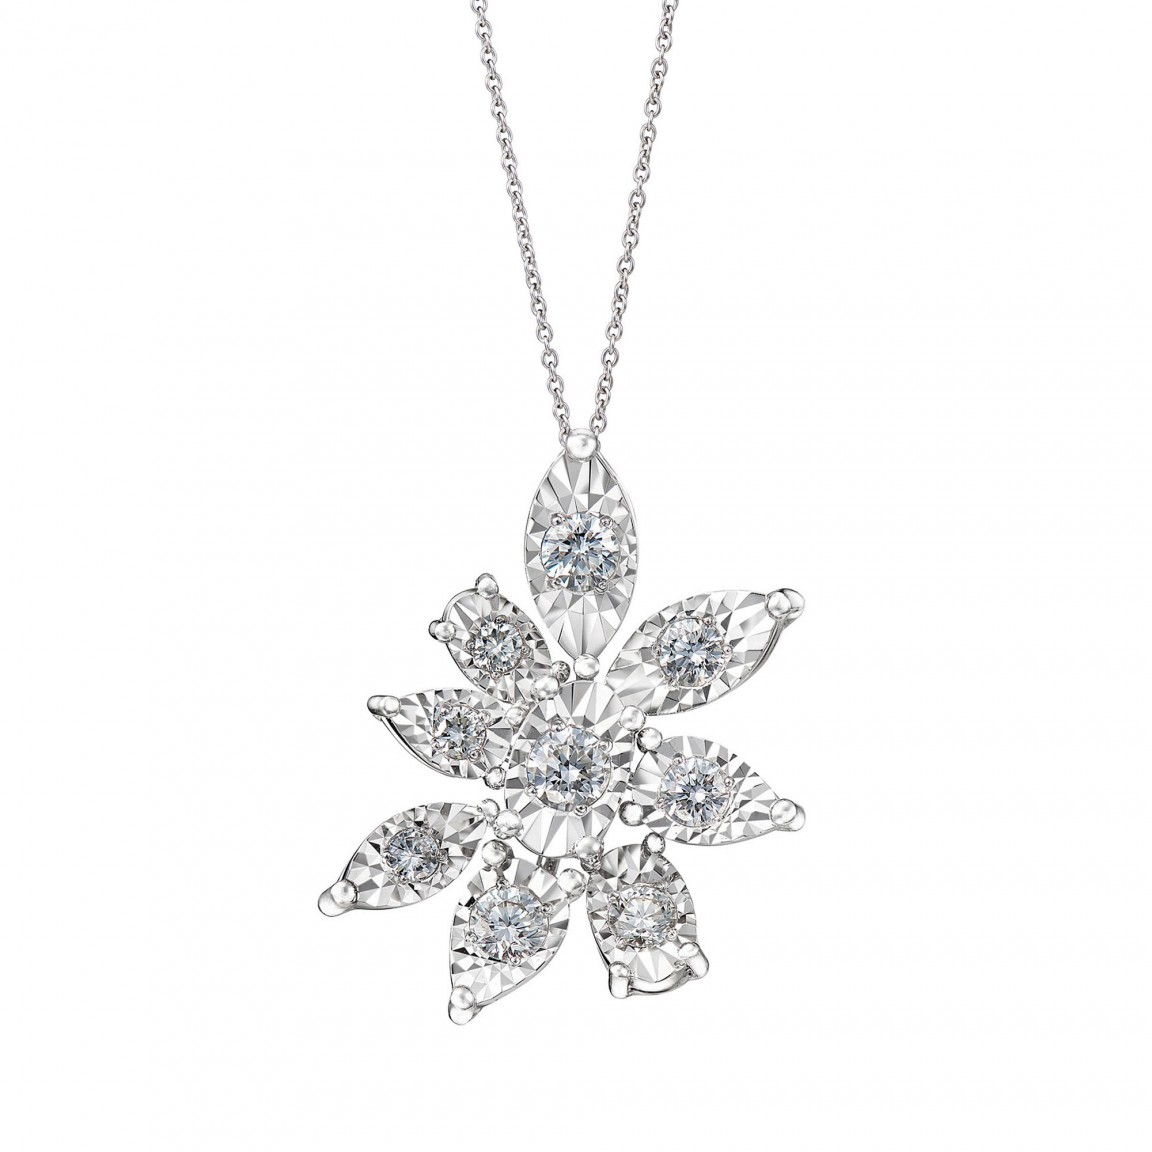 The Lotus Diamond Necklace